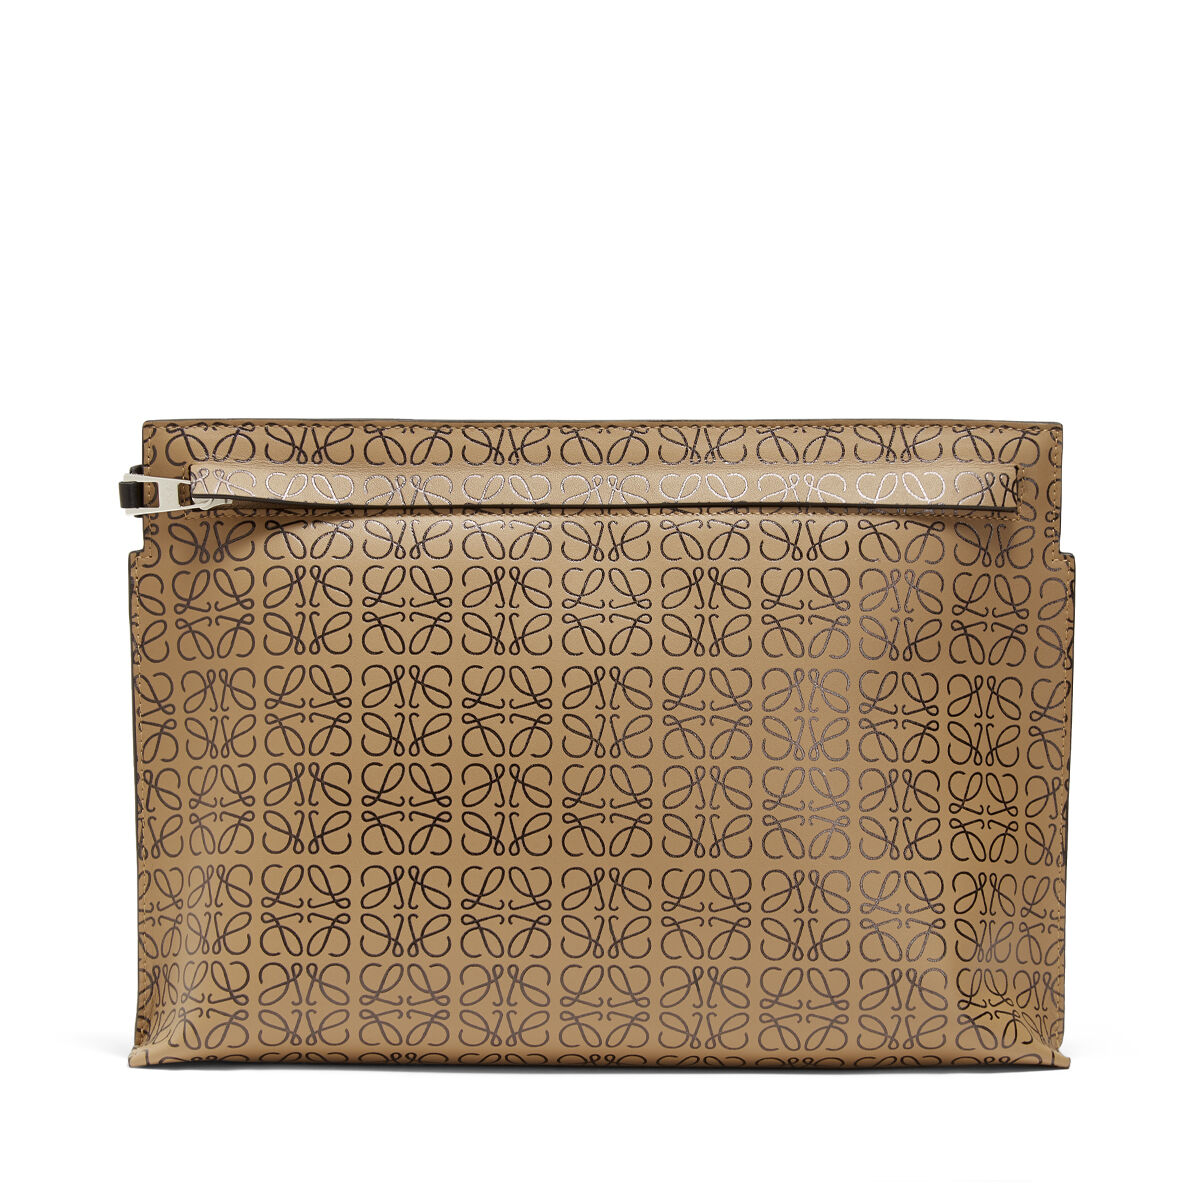 LOEWE T Pouch Repeat Mocca/Negro front